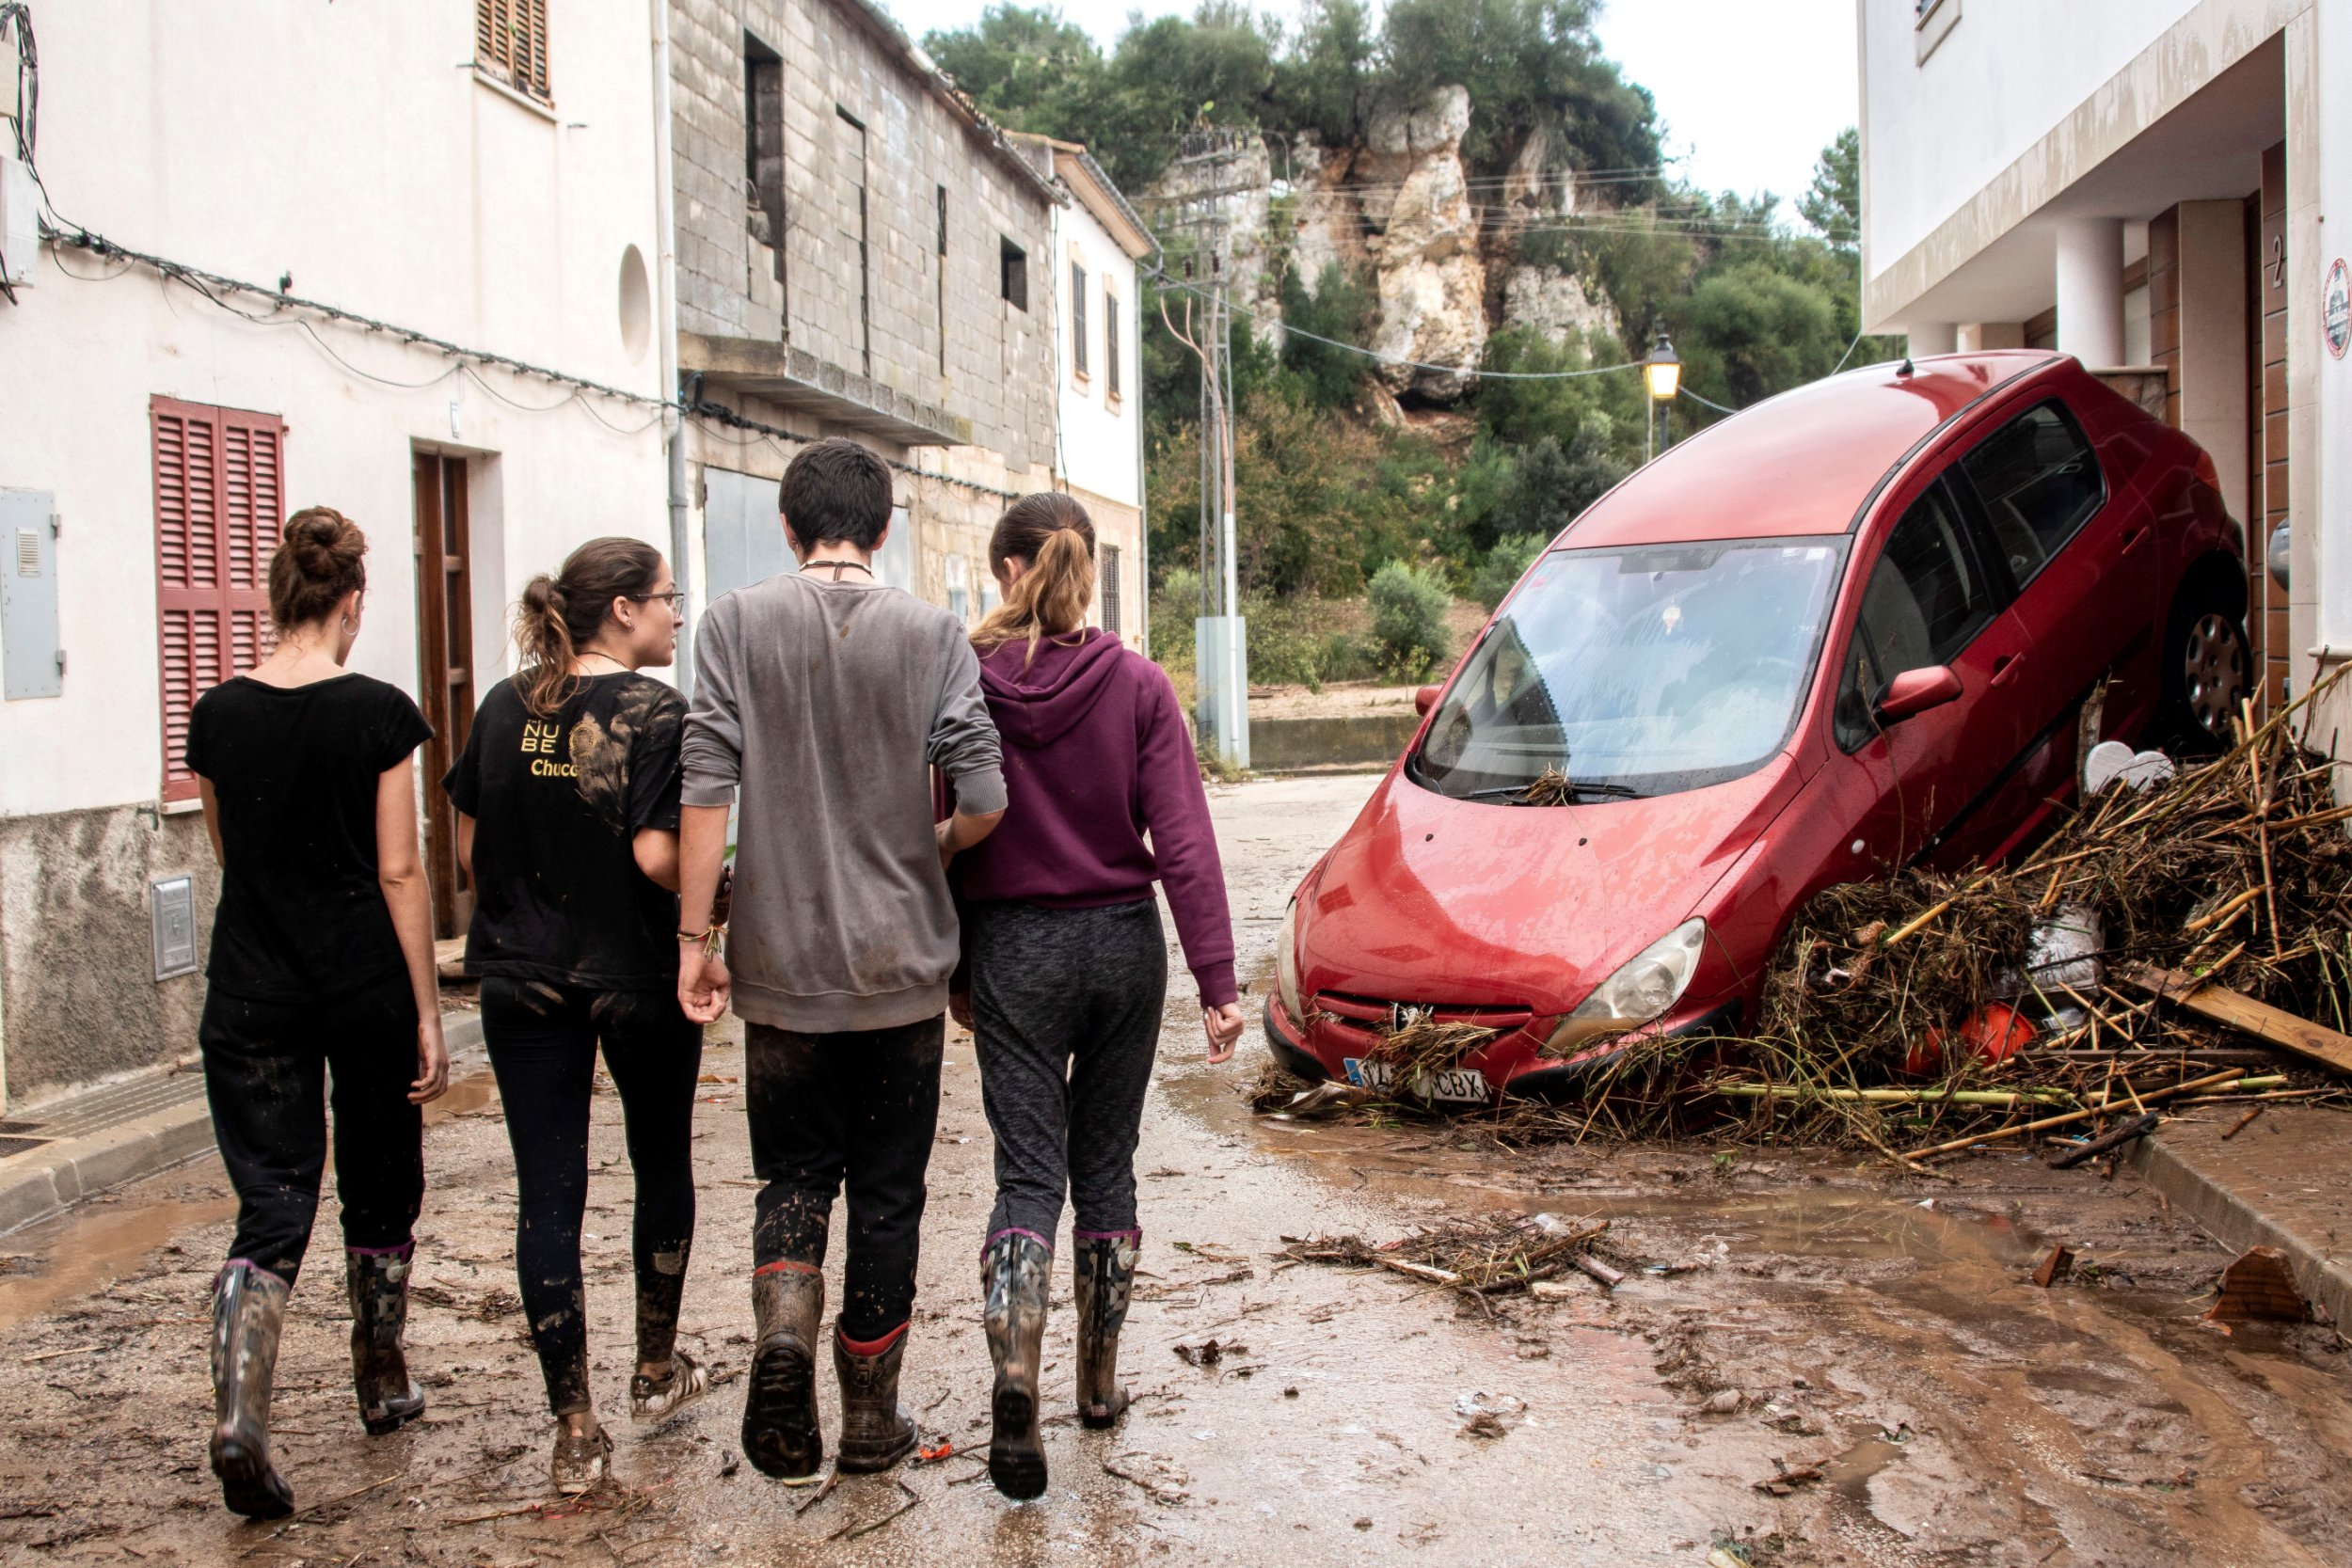 epa07083931 Residents walk along a muddy street during clean-up efforts after flash floods hit the village of Sant Llorenc des Cardasar in Mallorca, Spain, 10 October 2018. At least ten people died and a 5-years-old boy is missing due to heavy rains which caused the torrent of Sant Llorenc to overflow. Some 300 members of emergency services are taking part in the search operation. EPA/CATI CLADERA